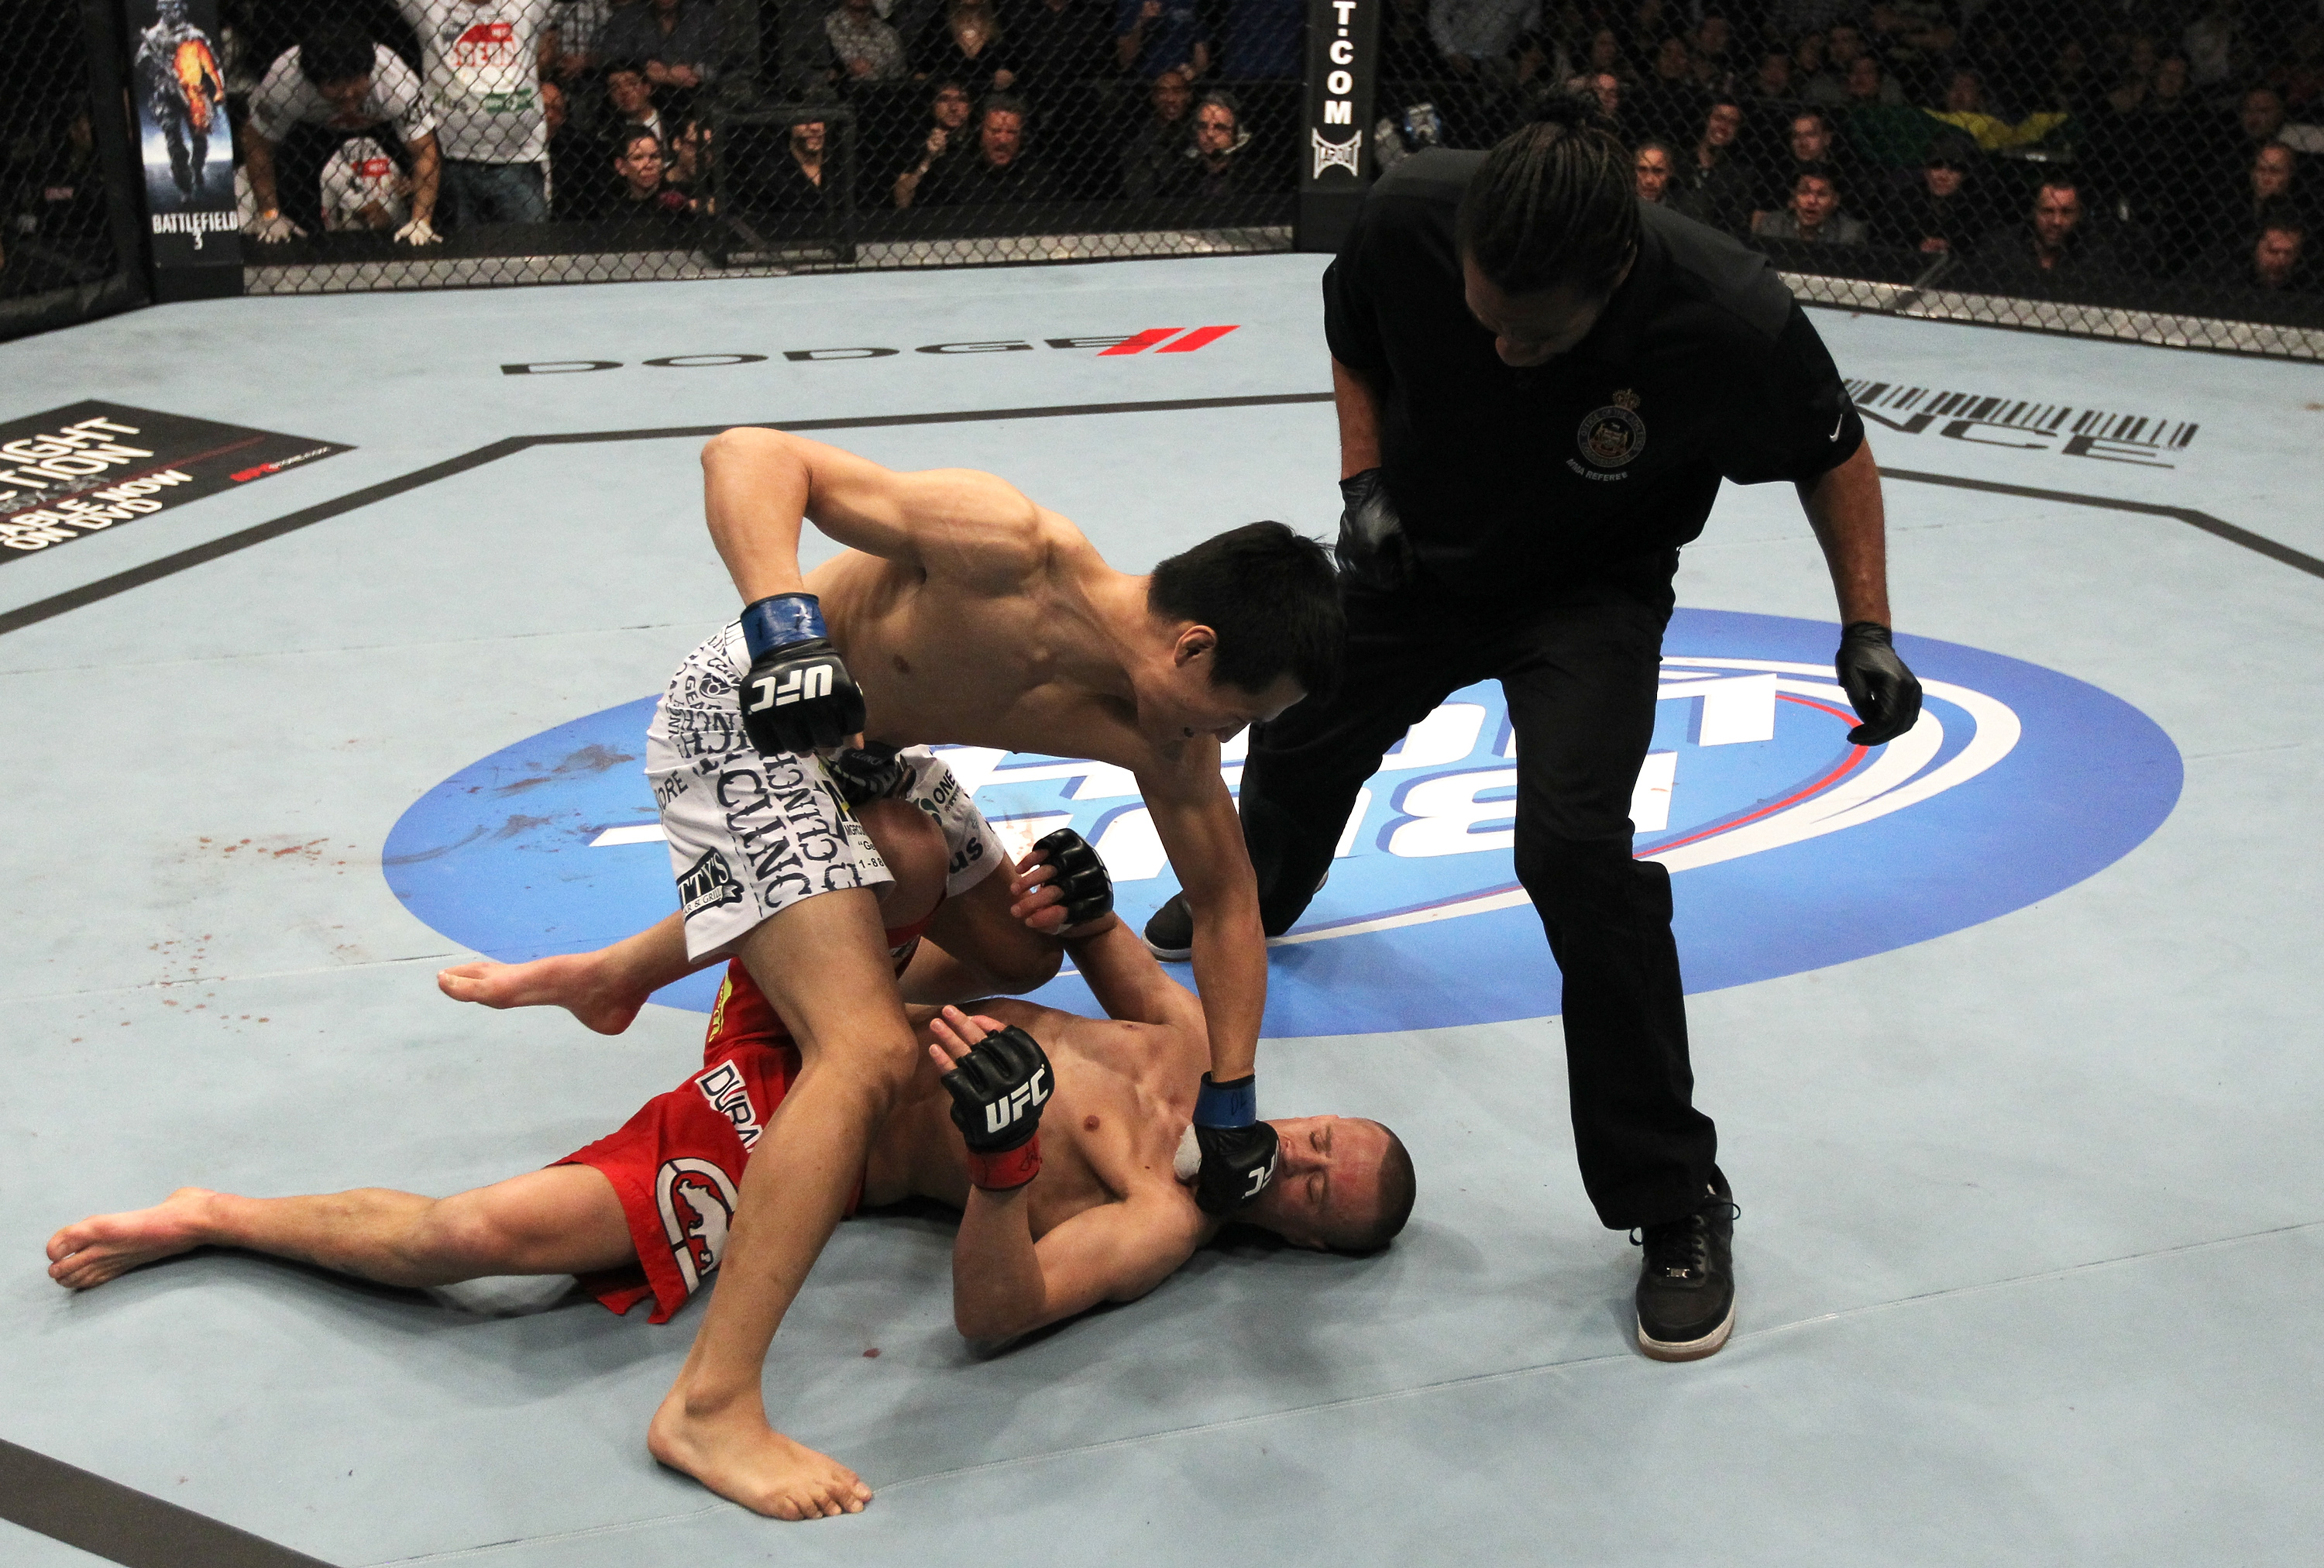 TORONTO, ON - DECEMBER 10: (L-R) &quot;The Korean Zombie&quot; Chan Sung Jung defeats Mark Hominick by knockout during the UFC 140 event at Air Canada Centre on December 10, 2011 in Toronto, Ontario, Canada. (Photo by Nick Laham/Zuffa LLC/Zuffa LLC via Getty Images)